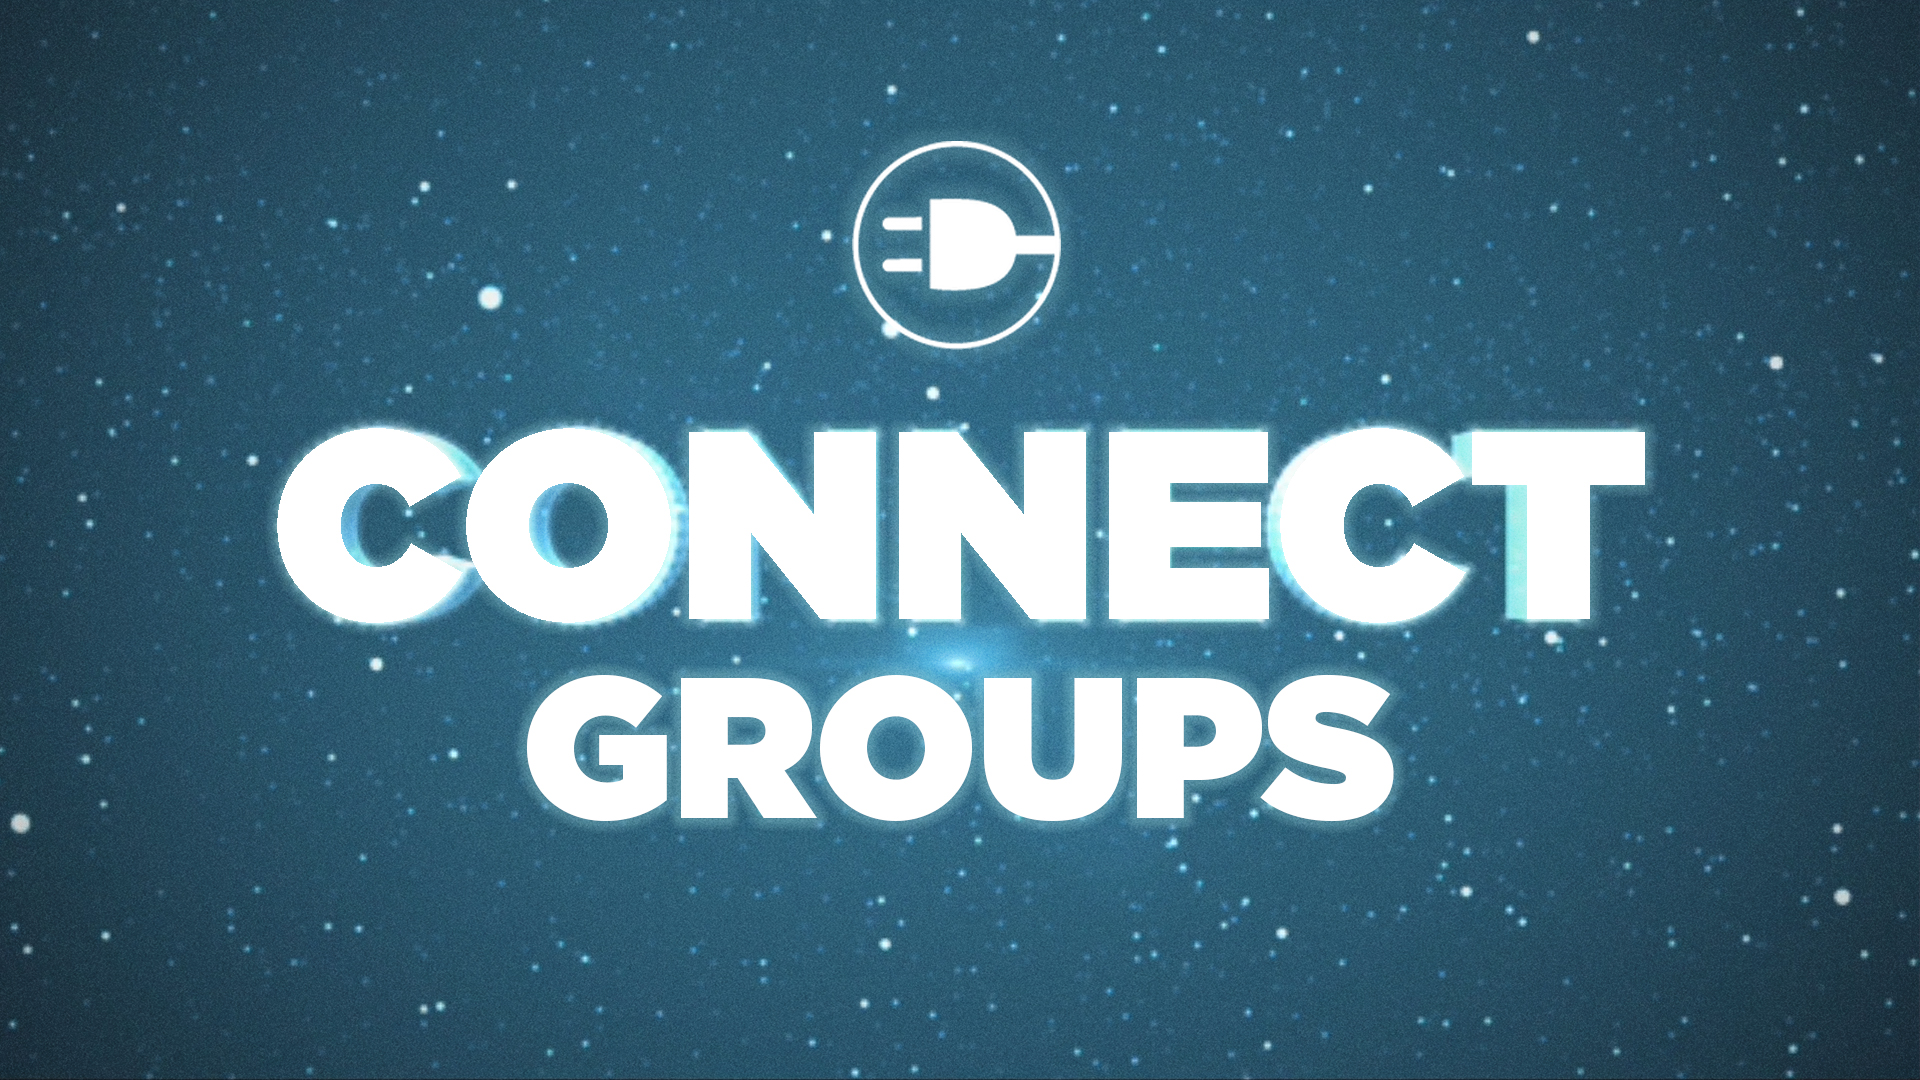 ConnectGroups.jpg